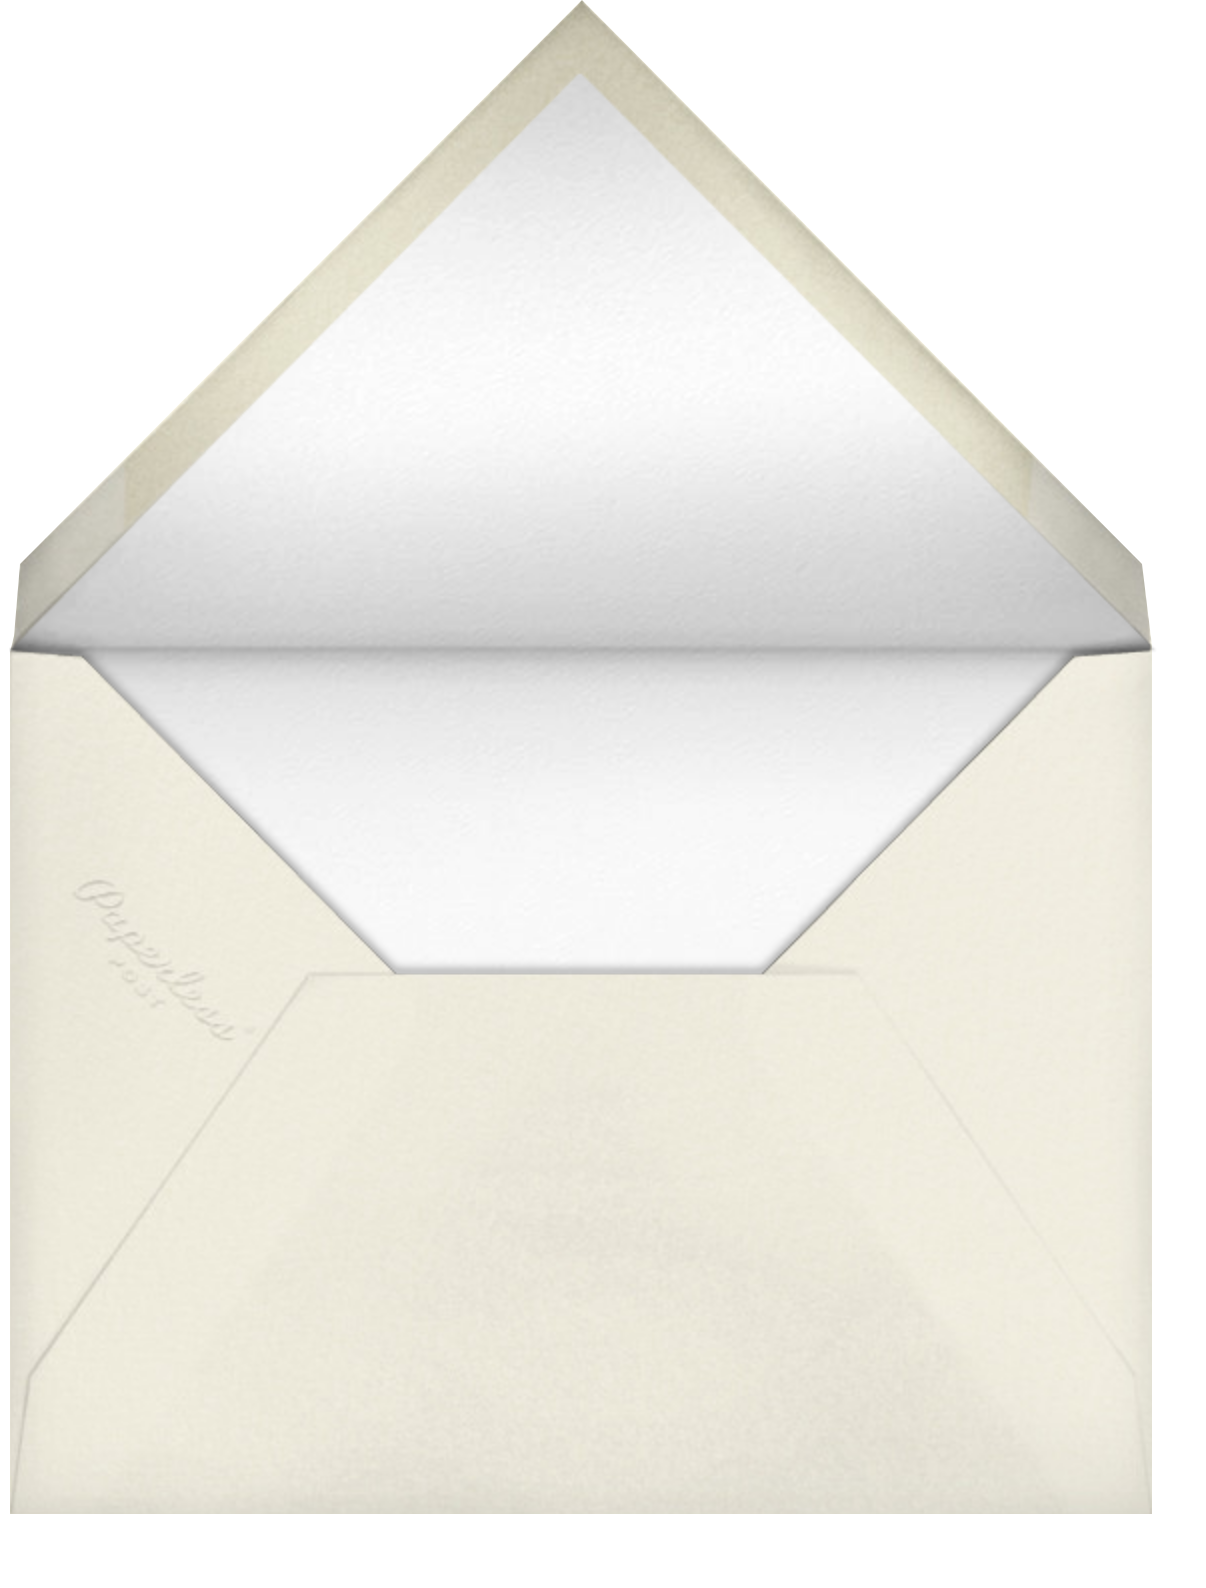 Oh, Grow Up! - Derek Blasberg - null - envelope back